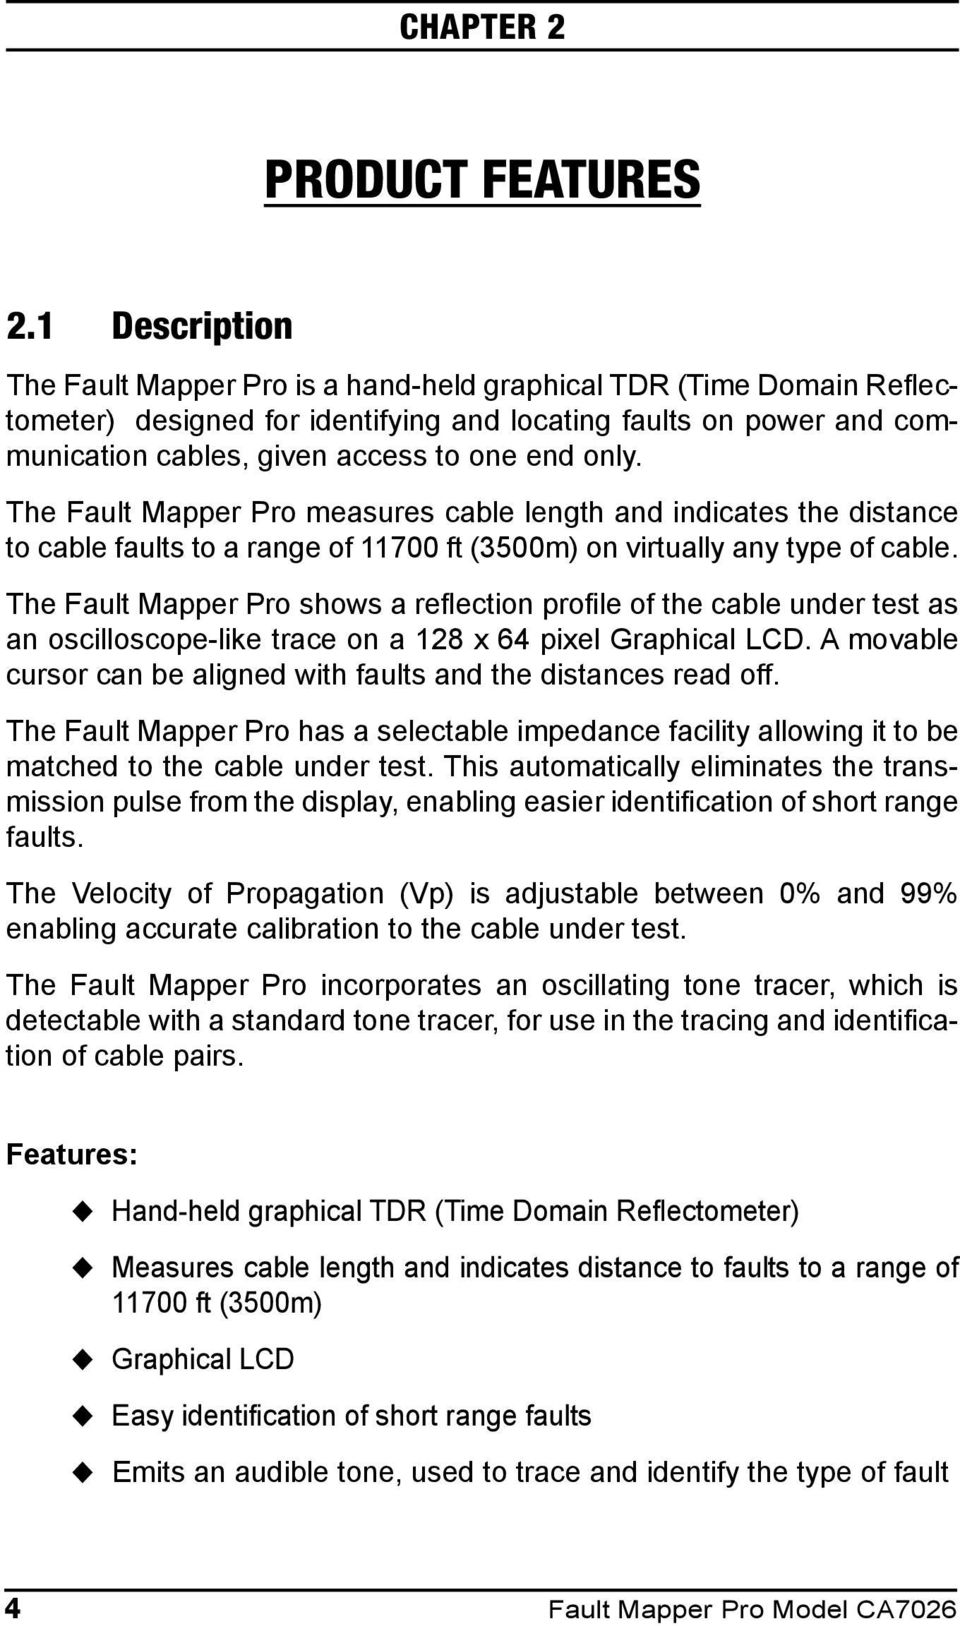 only. The Fault Mapper Pro measures cable length and indicates the distance to cable faults to a range of 11700 ft (3500m) on virtually any type of cable.